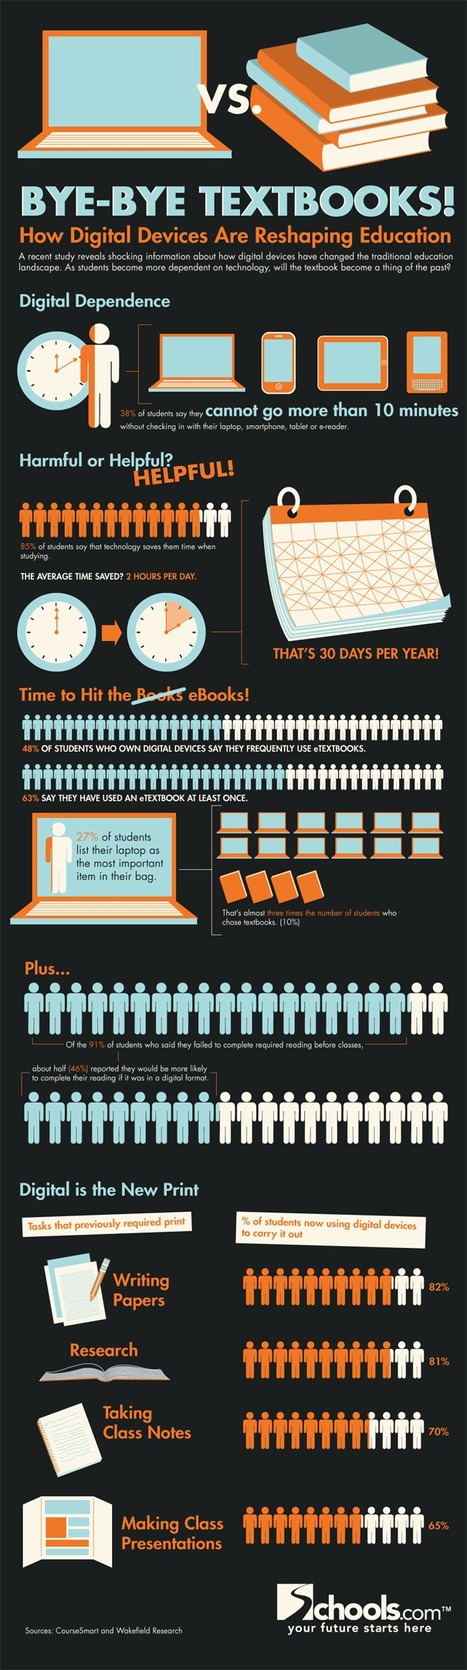 Bye-Bye Textbooks! How Digital Devices Are Reshaping Education Infographic | Affordable Learning | Scoop.it